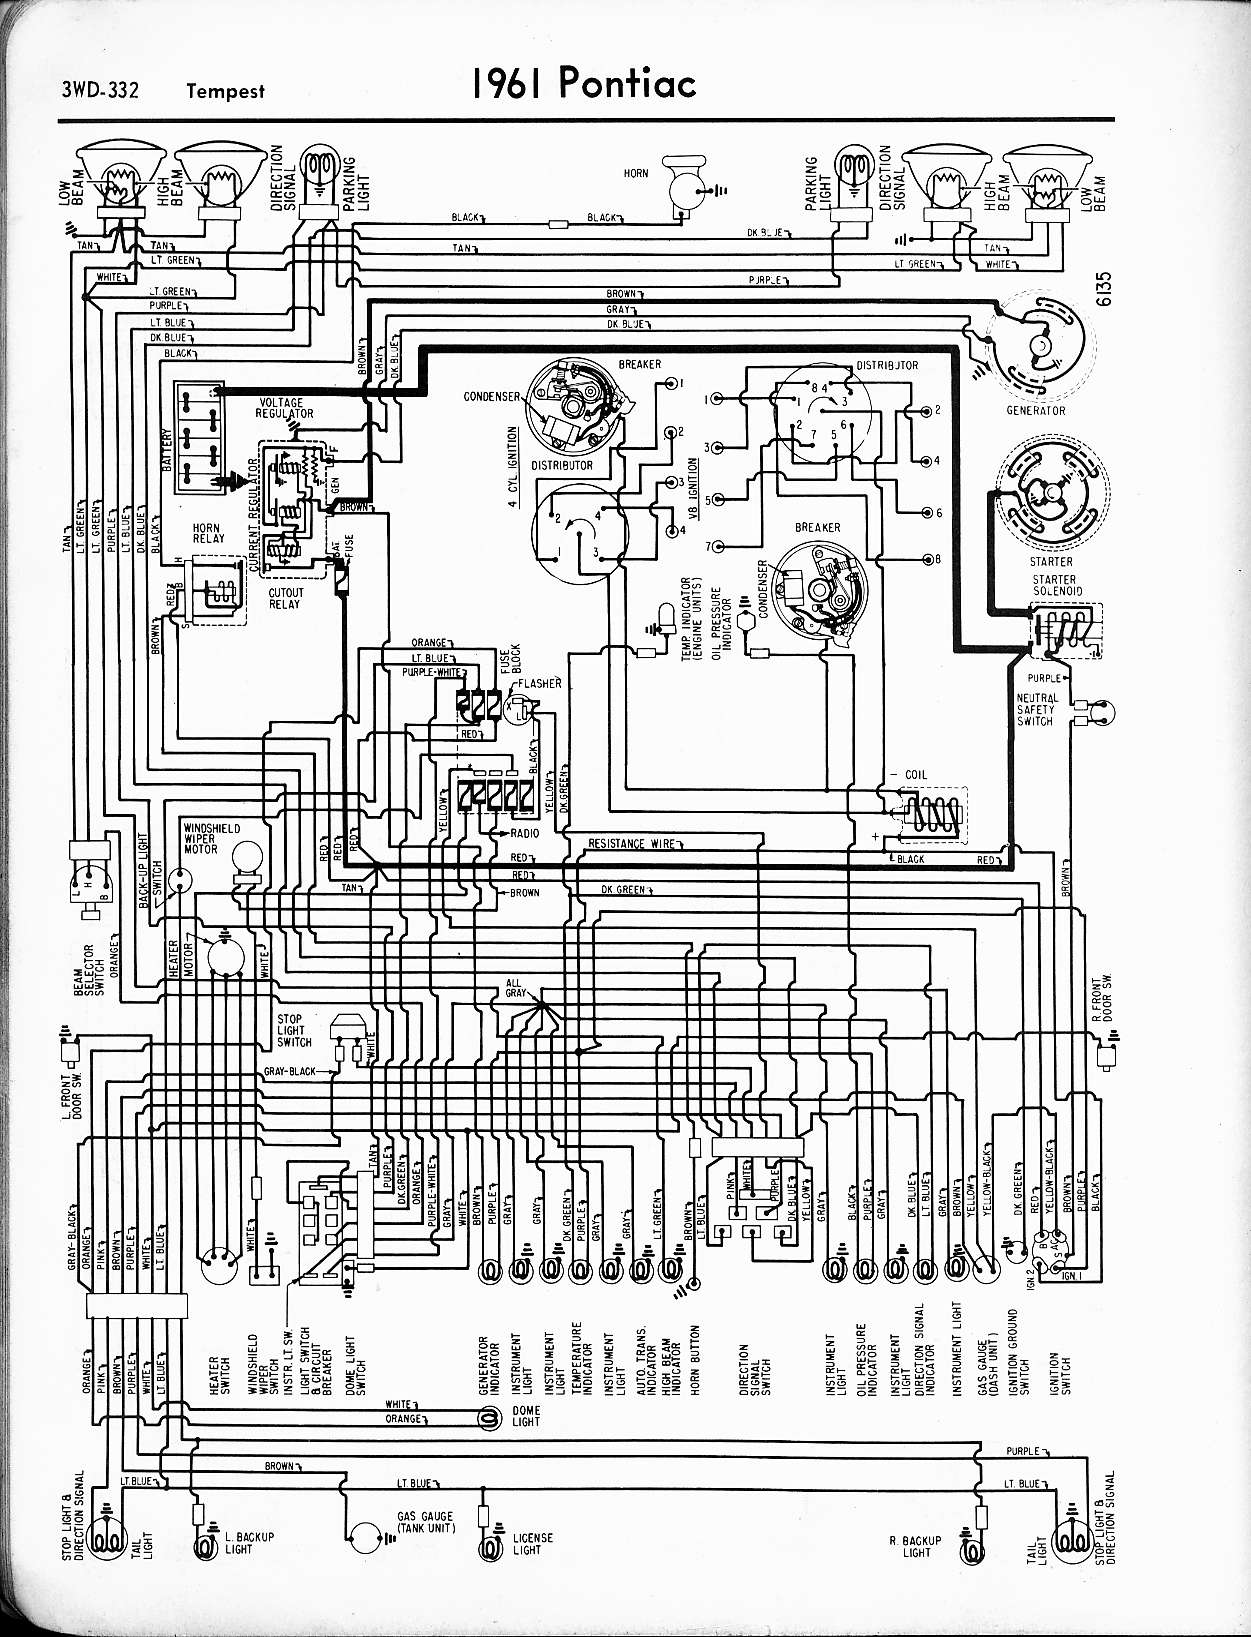 [WRG-7045] Roadrunner Fuse Box Diagram